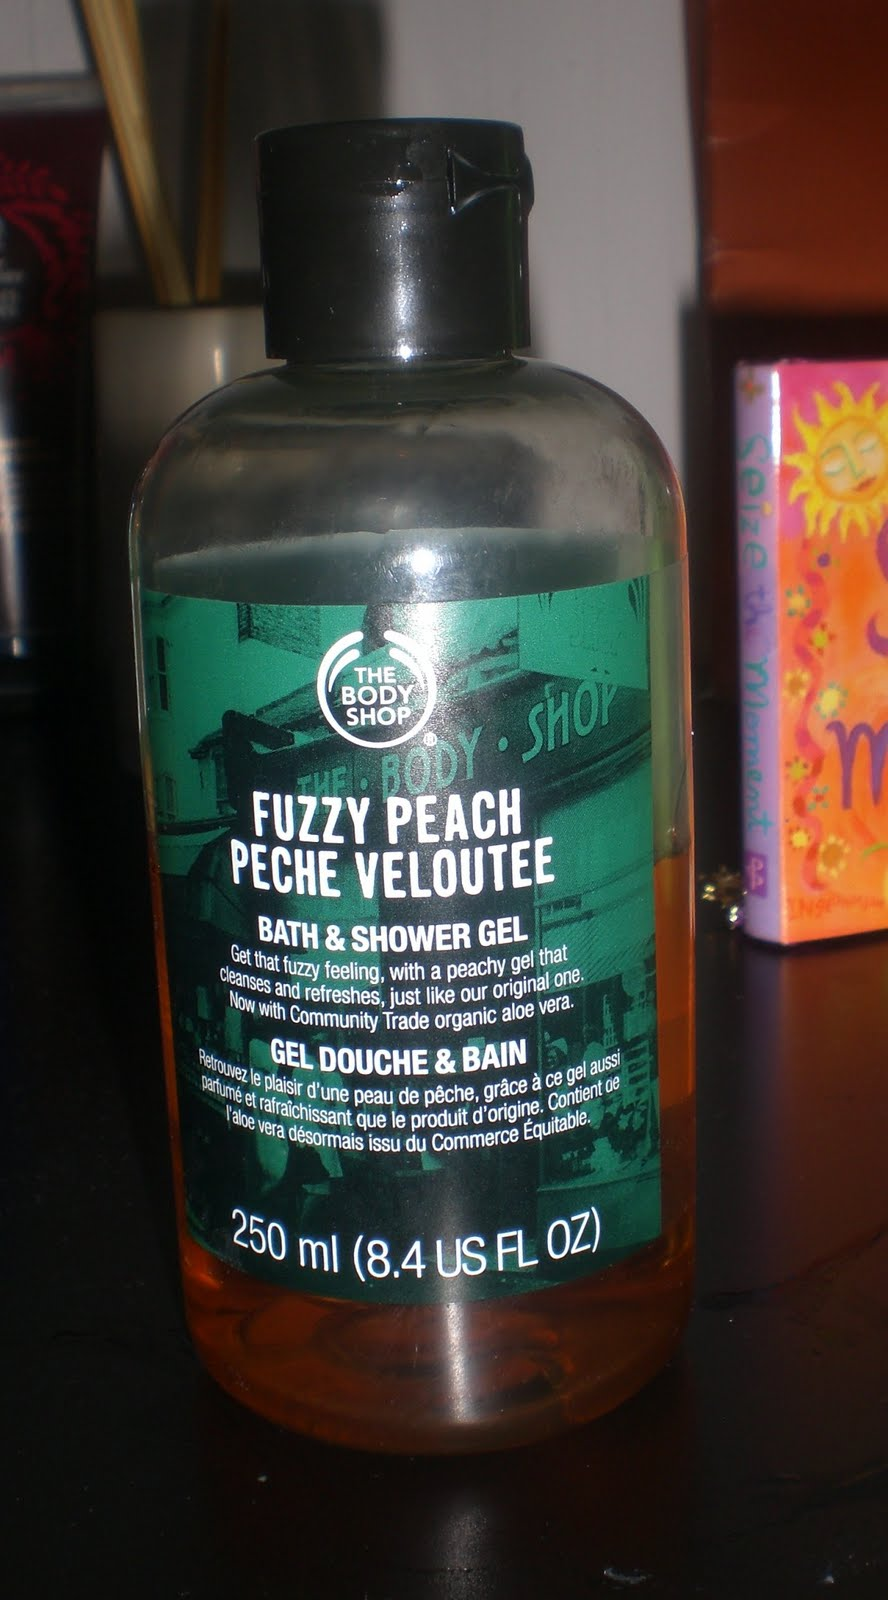 Cotton Candy Fro: The Body Shop Fuzzy Peach Bath and Shower Gel